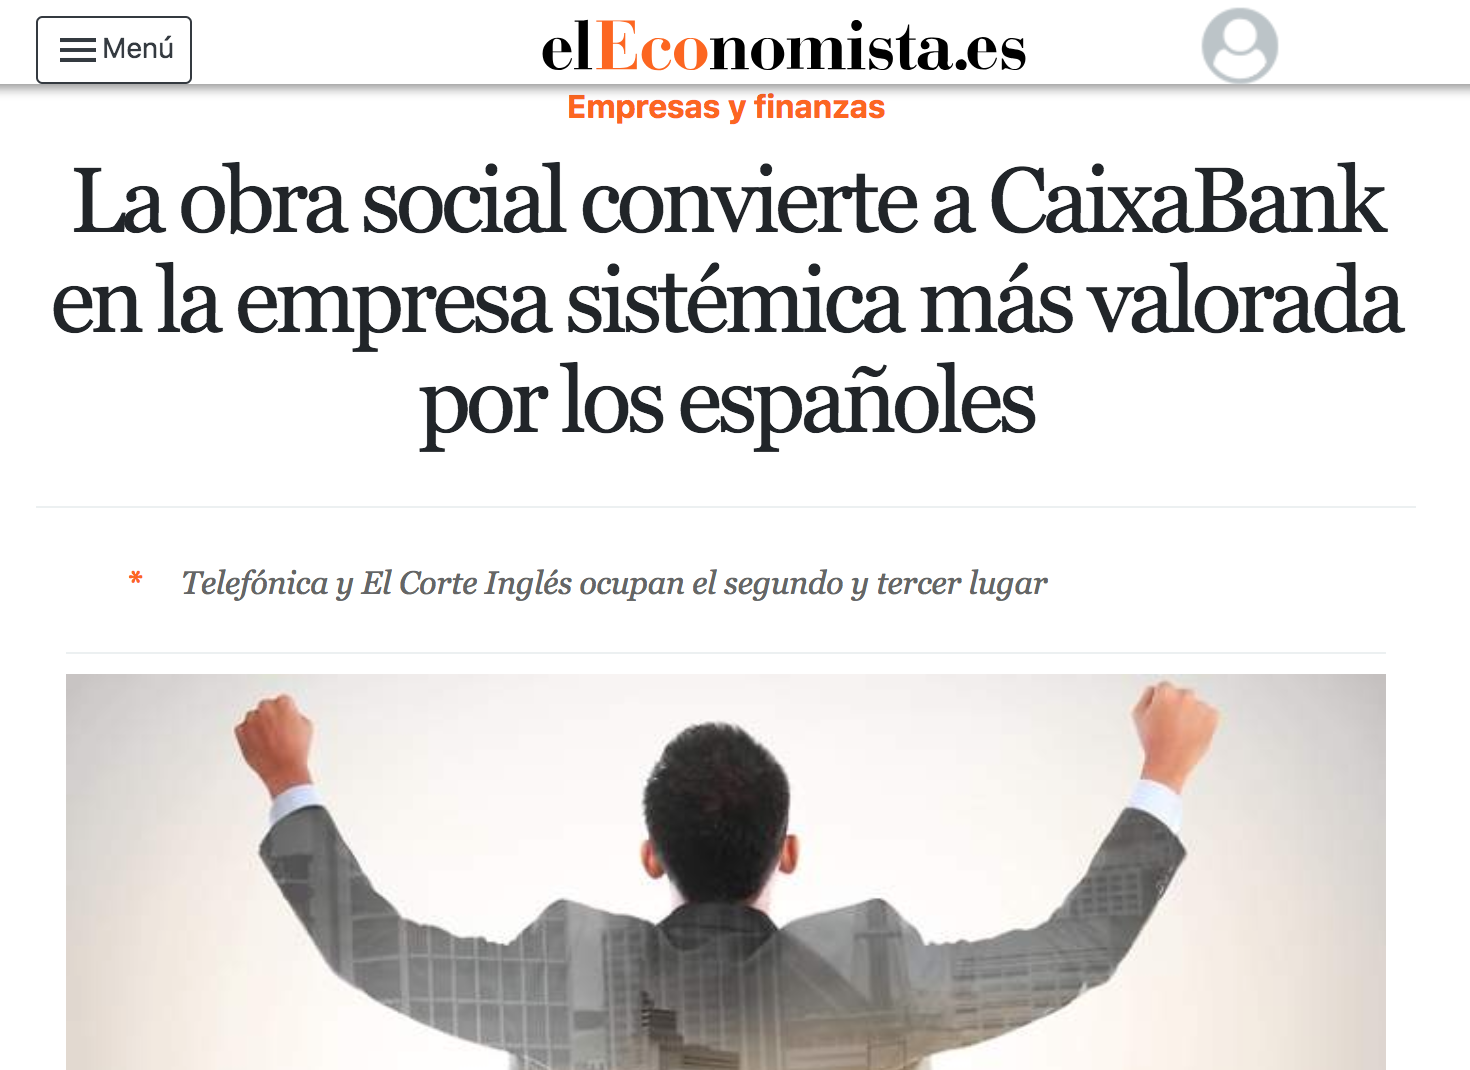 Article by Jorge Díaz-Cardiel in El Economista